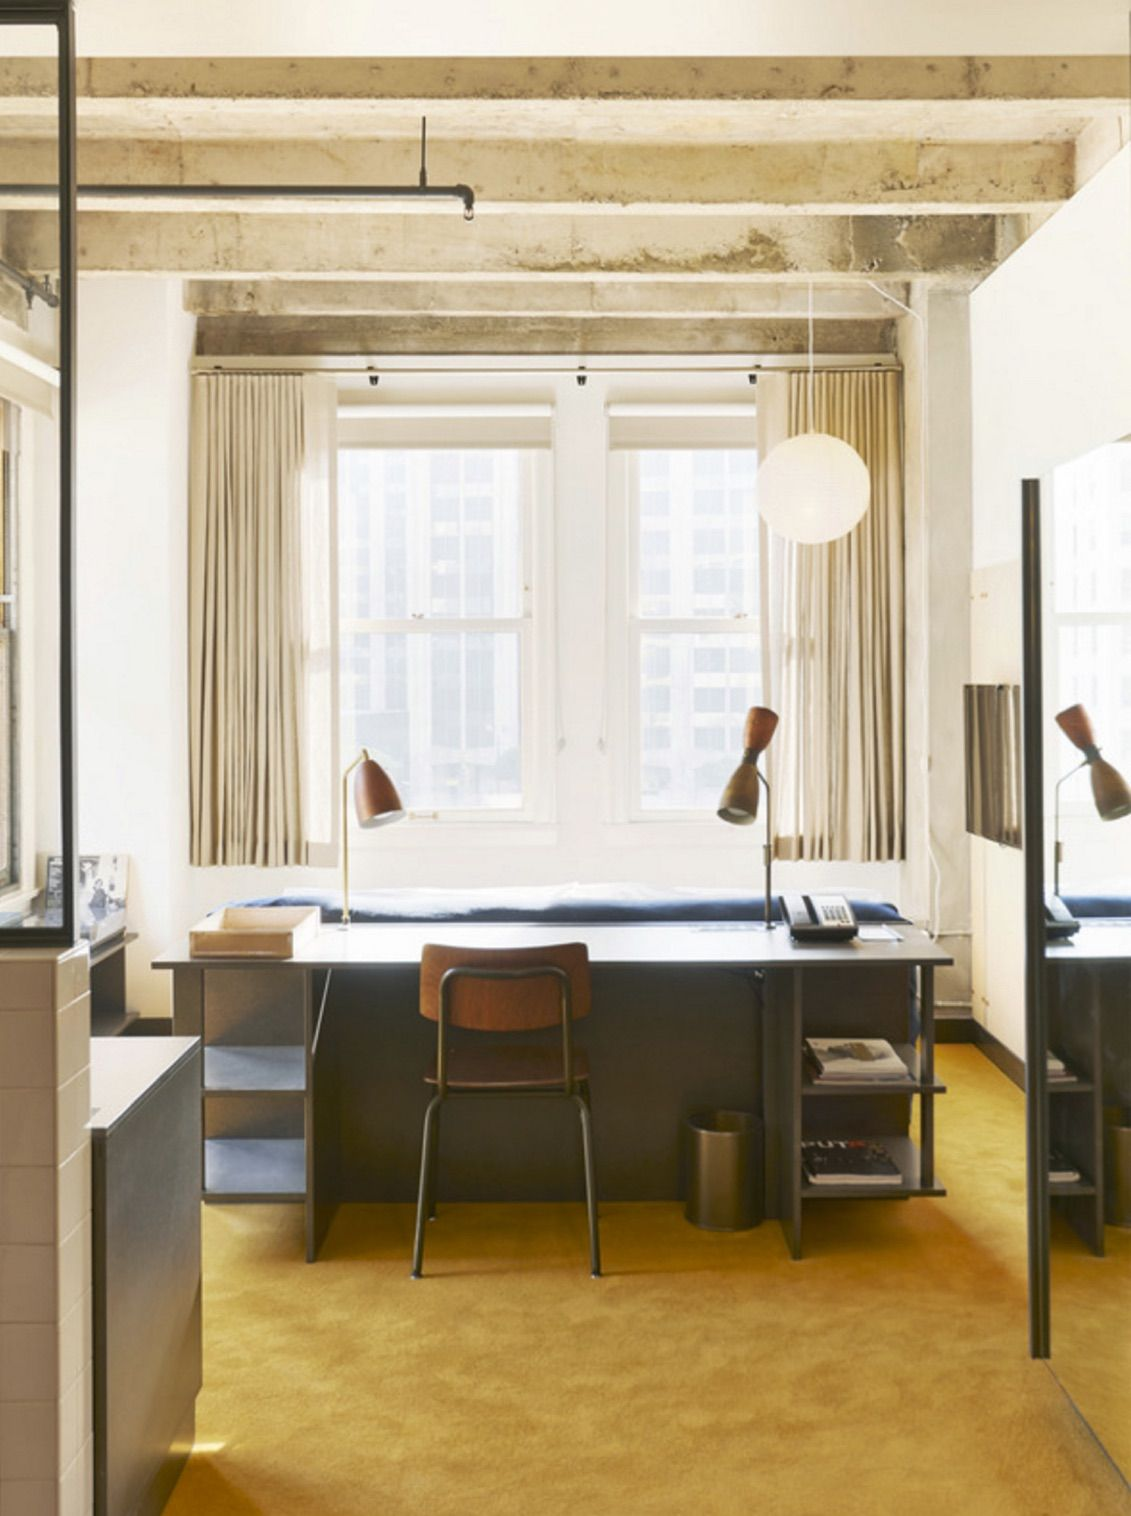 Explore Ace Hotel, Furniture And More!